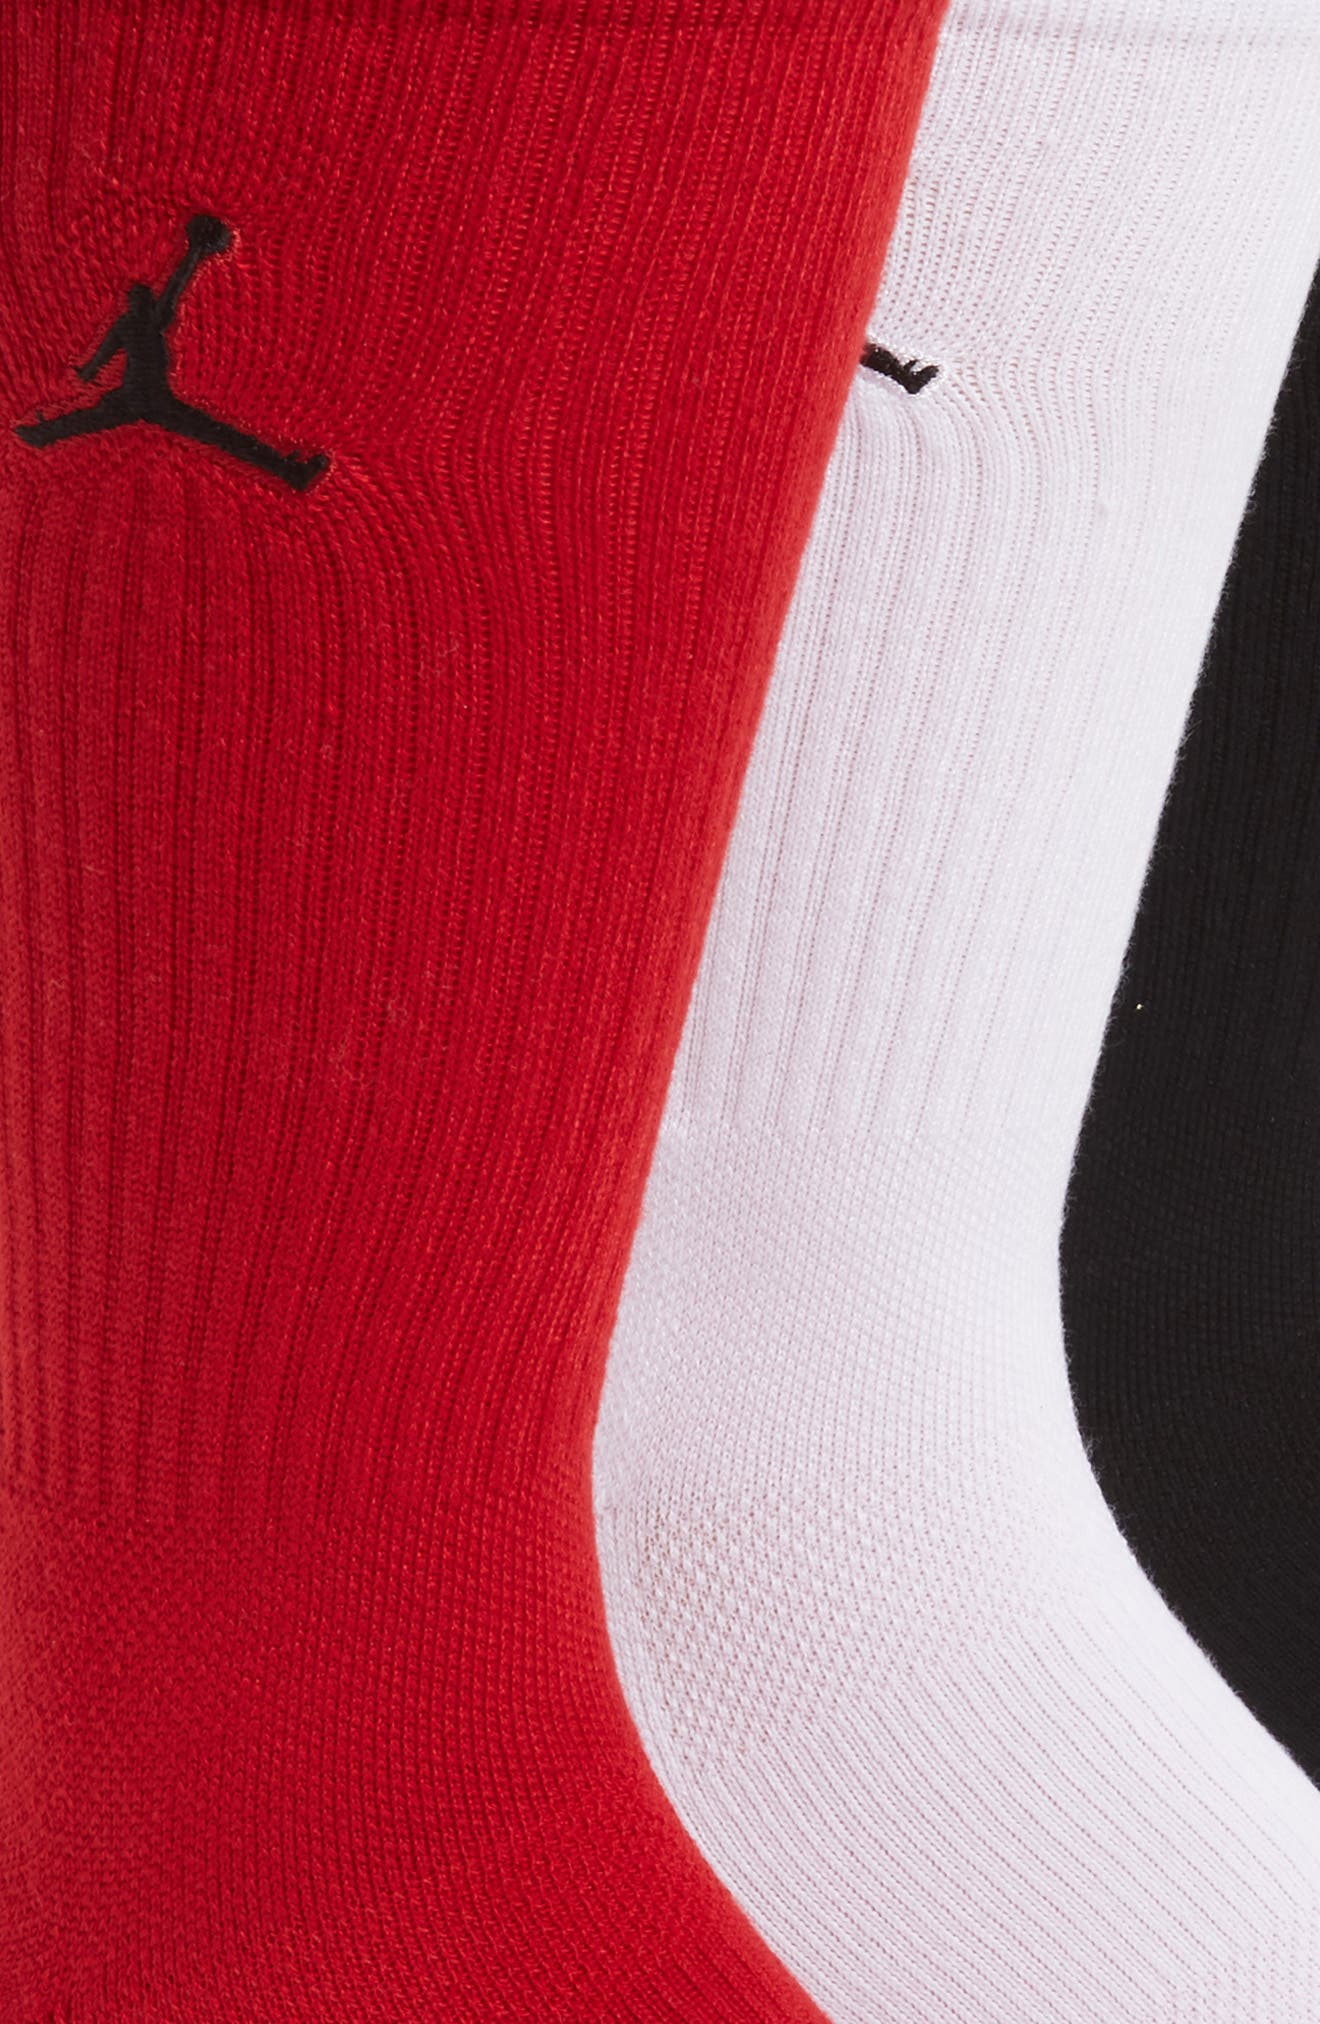 NIKE,                             Jumpman 3-Pack Dry Crew Socks,                             Alternate thumbnail 2, color,                             011